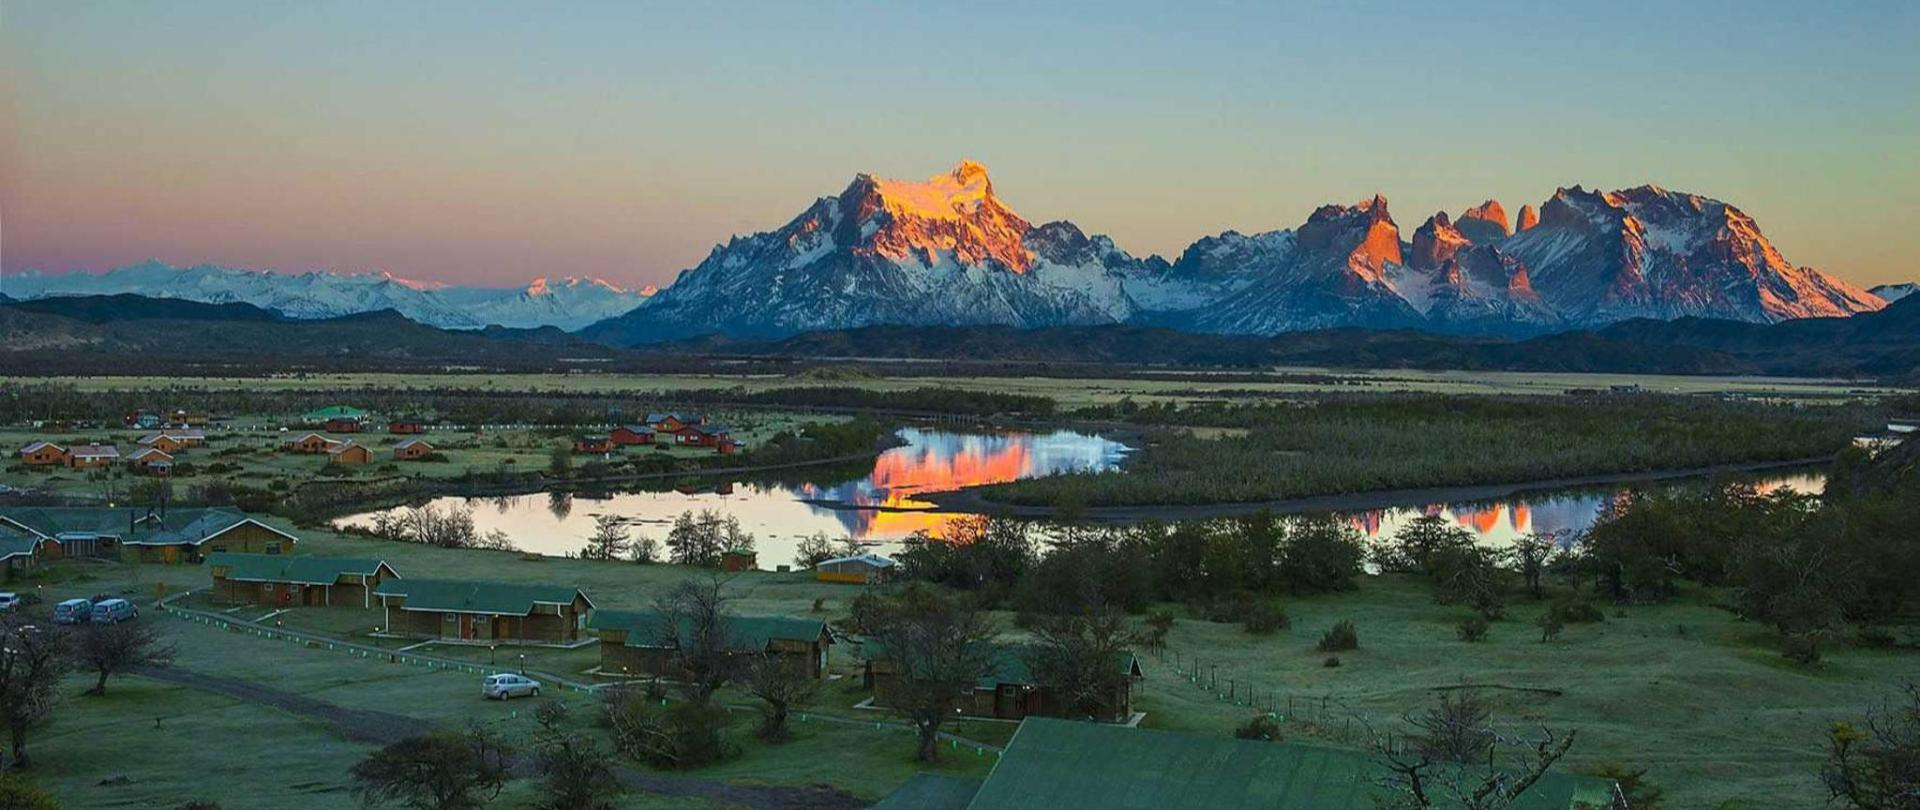 dawn-hotel-torres-del-paine-cfd_5449999999.jpg